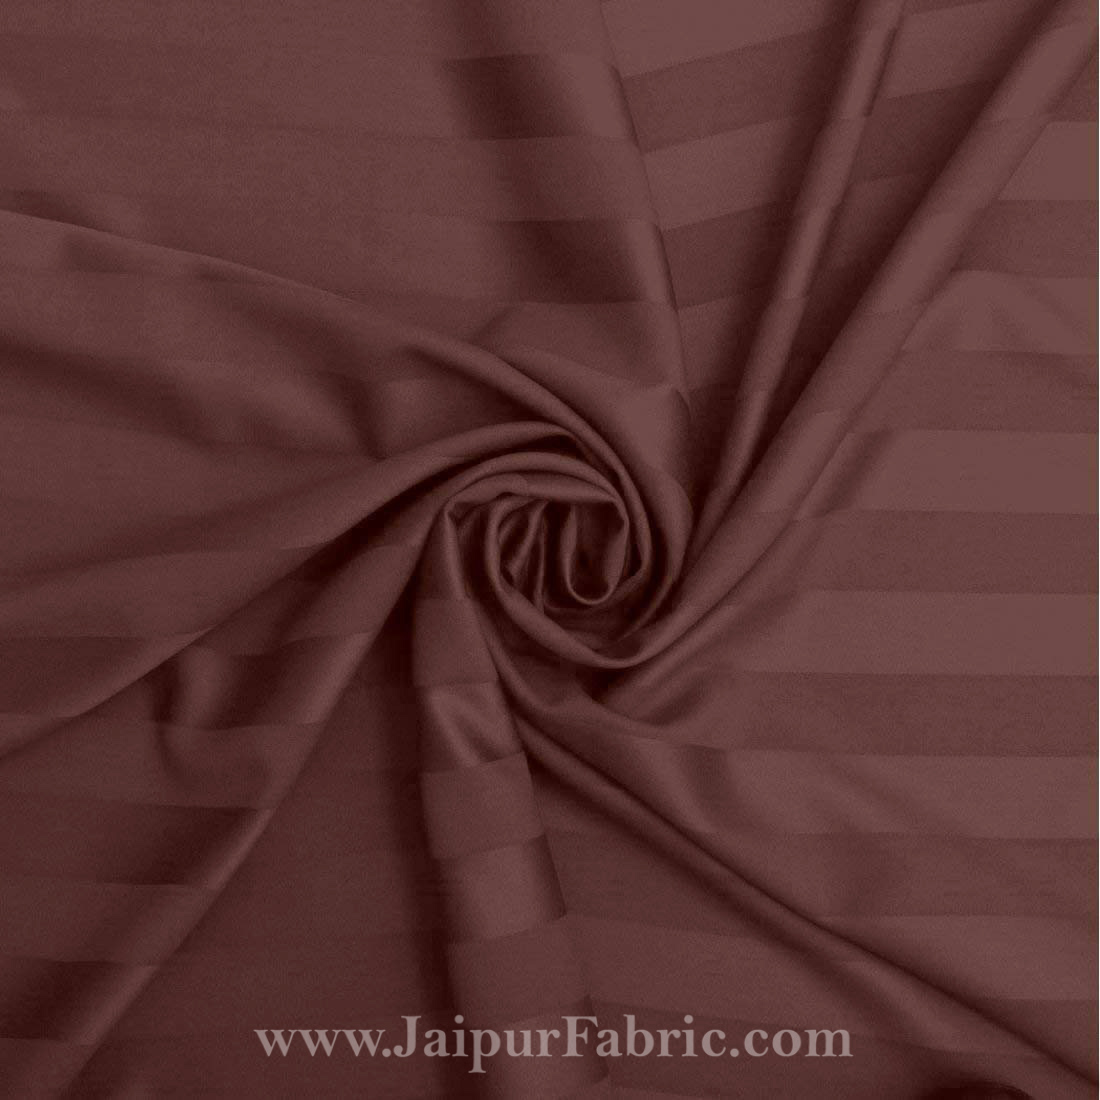 Dark Brown Self Design 300 TC King Size Pure Cotton Satin Slumber Sheet for Double Bed with 2 pillow covers